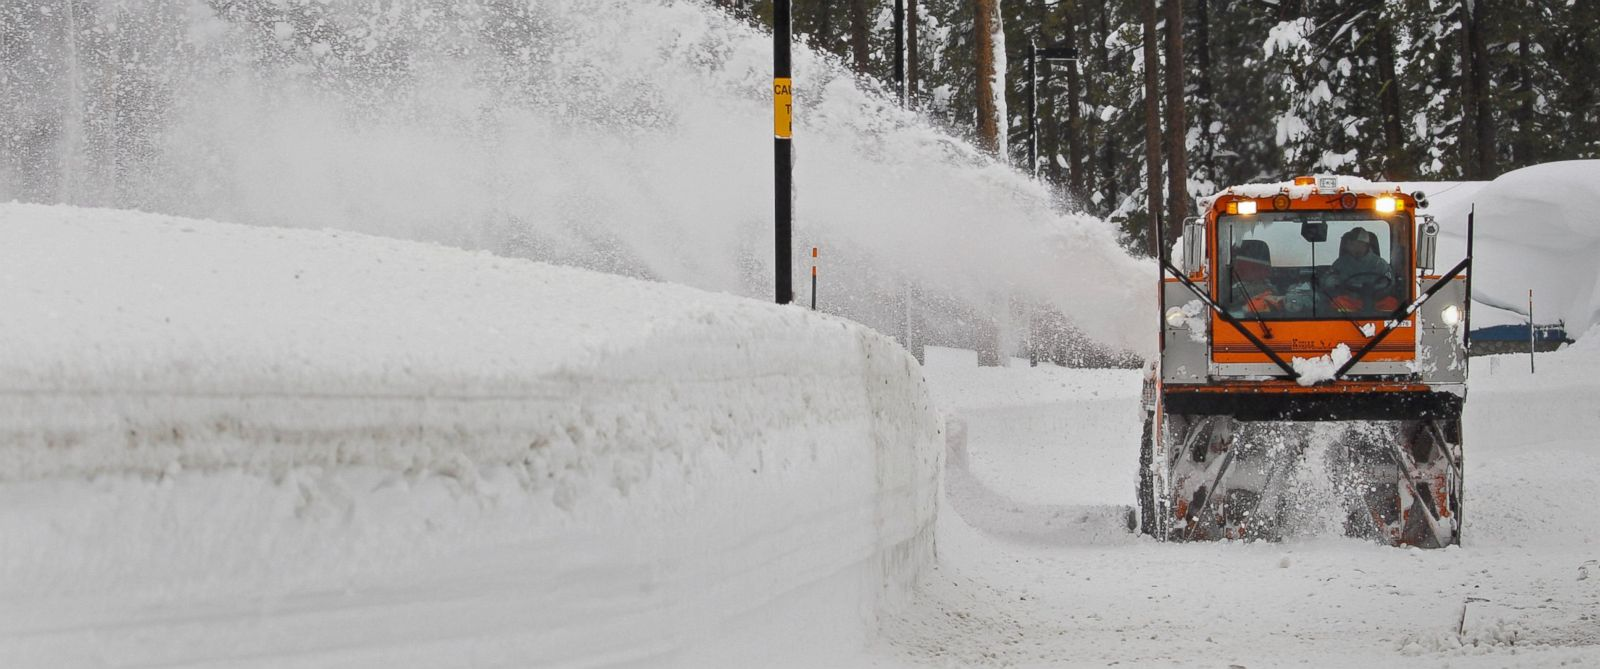 PHOTO: Snow is cleared from the Donner Pass rest area at Donner Pass summit during a winter storm, near Truckee, California, Jan. 7, 2017.